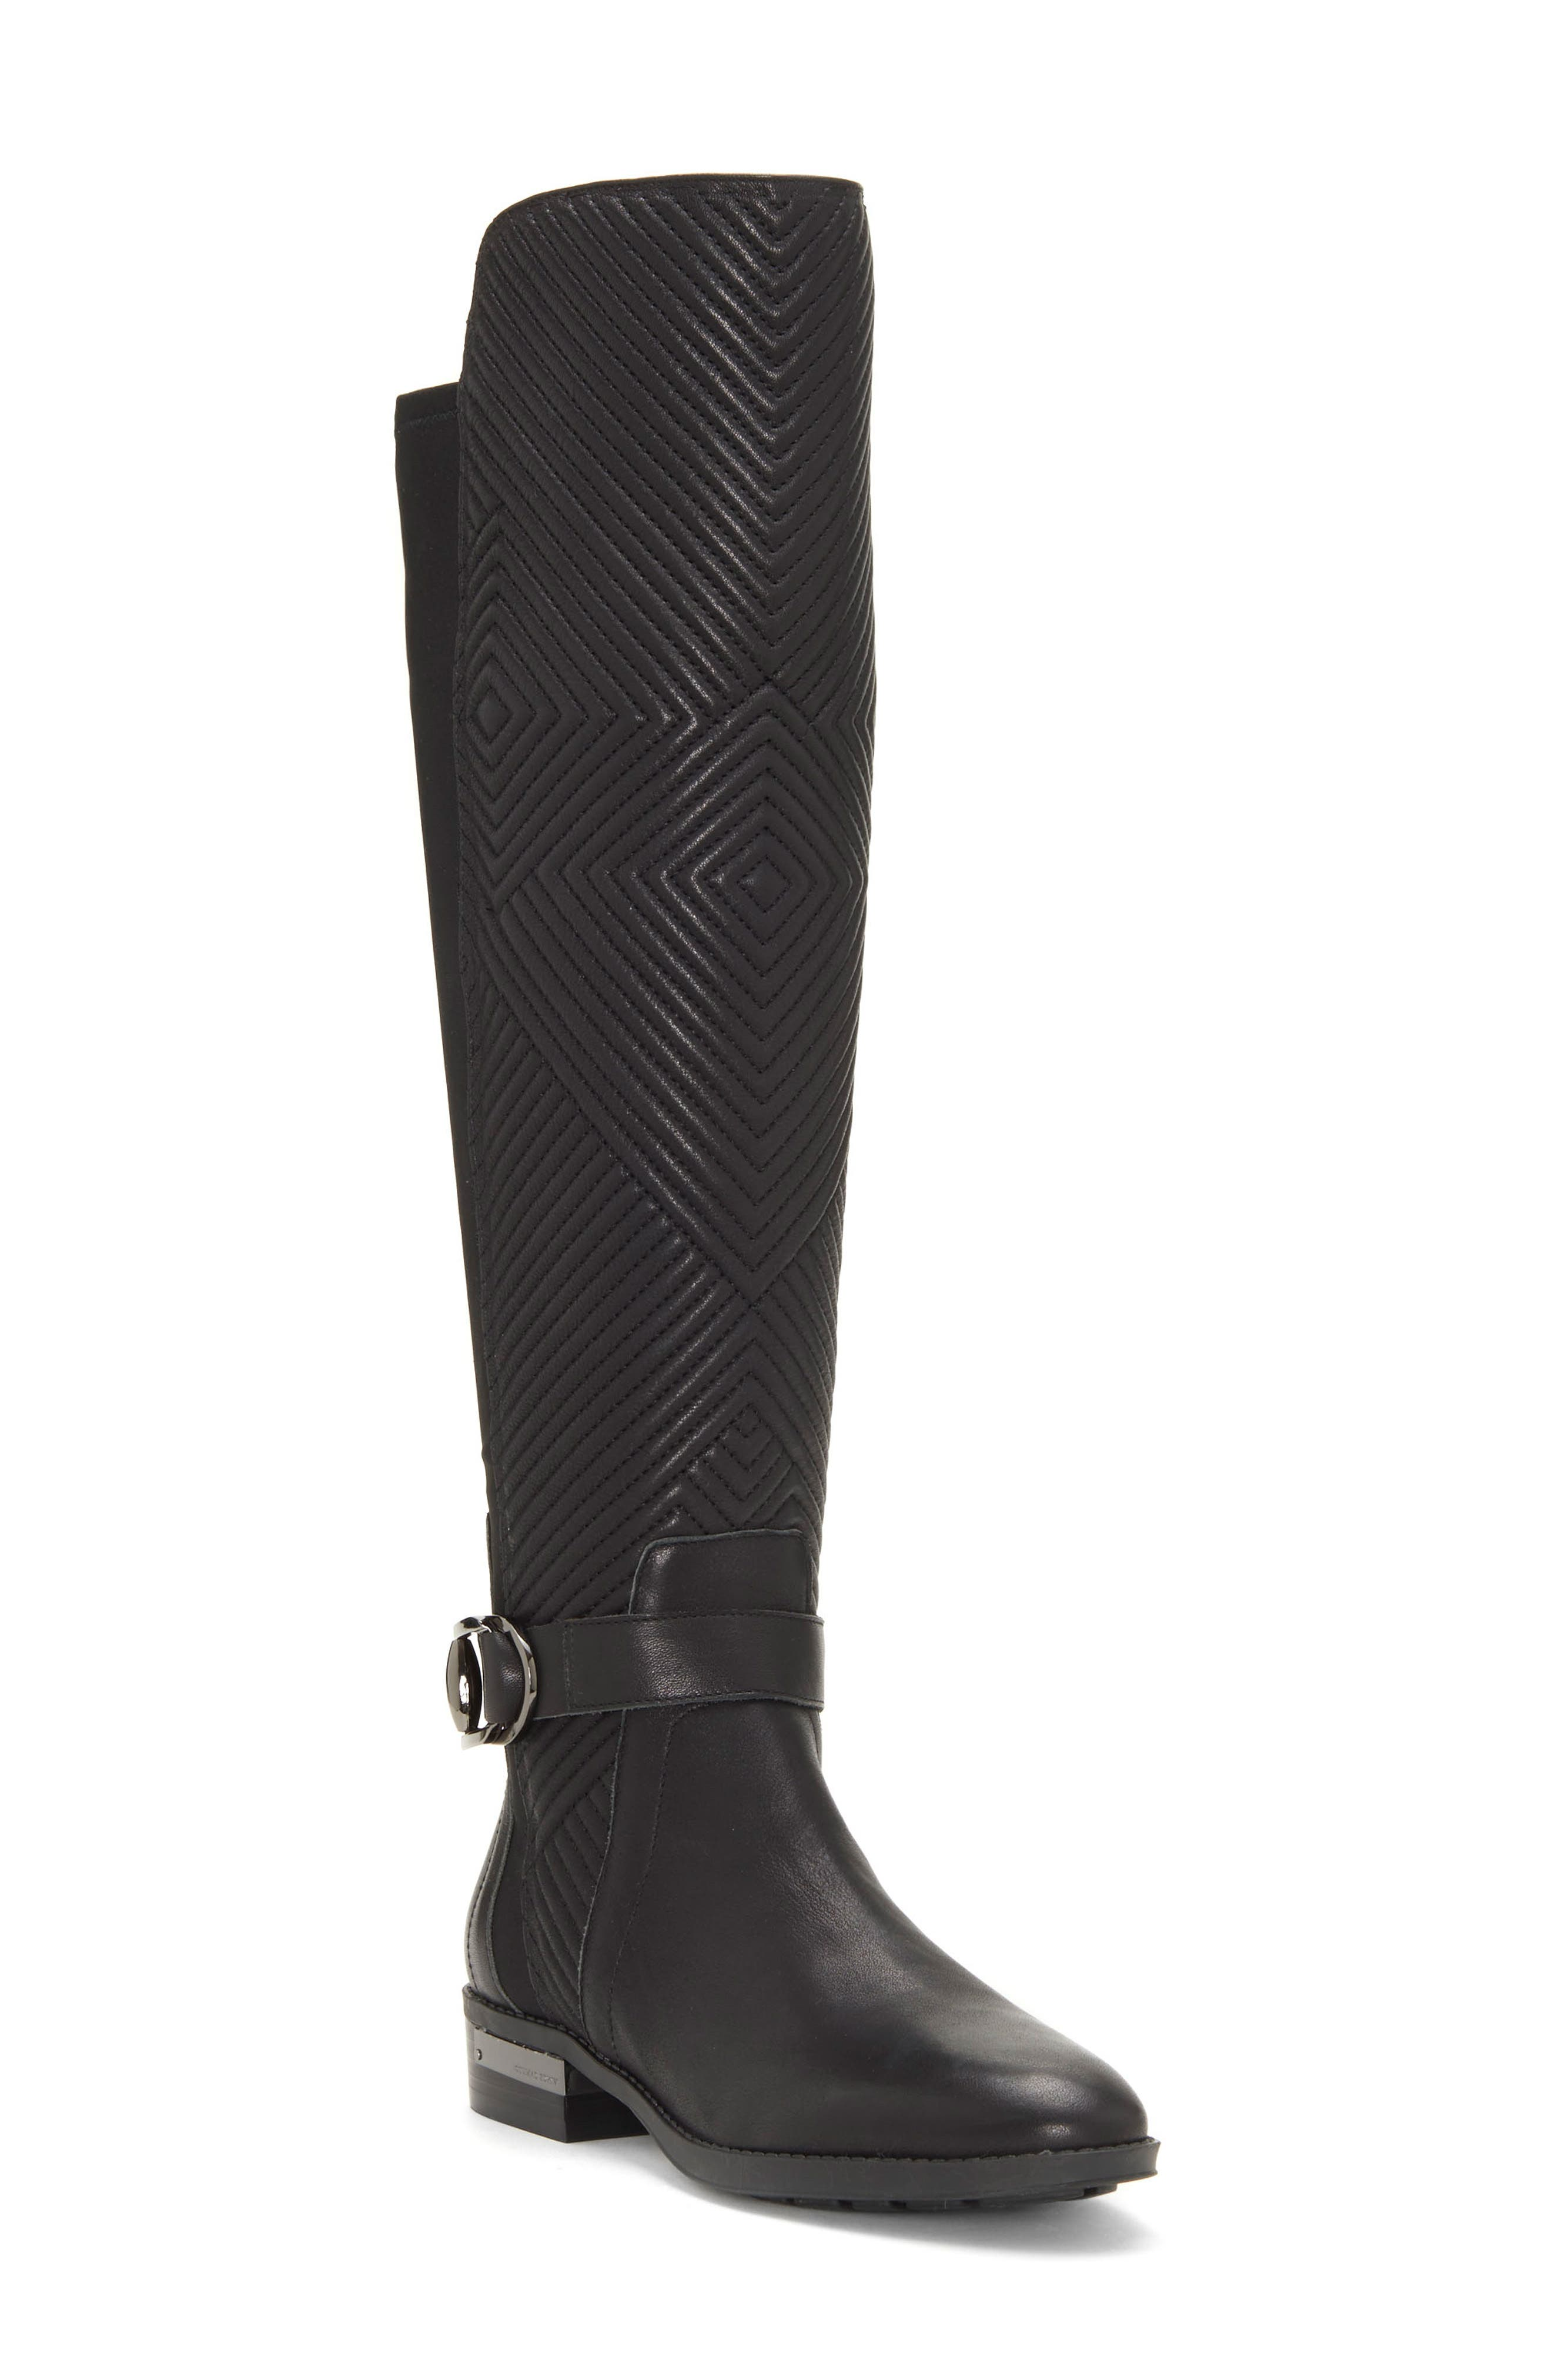 Pordalia Over-the-Knee Boot,                         Main,                         color, BLACK LEATHER